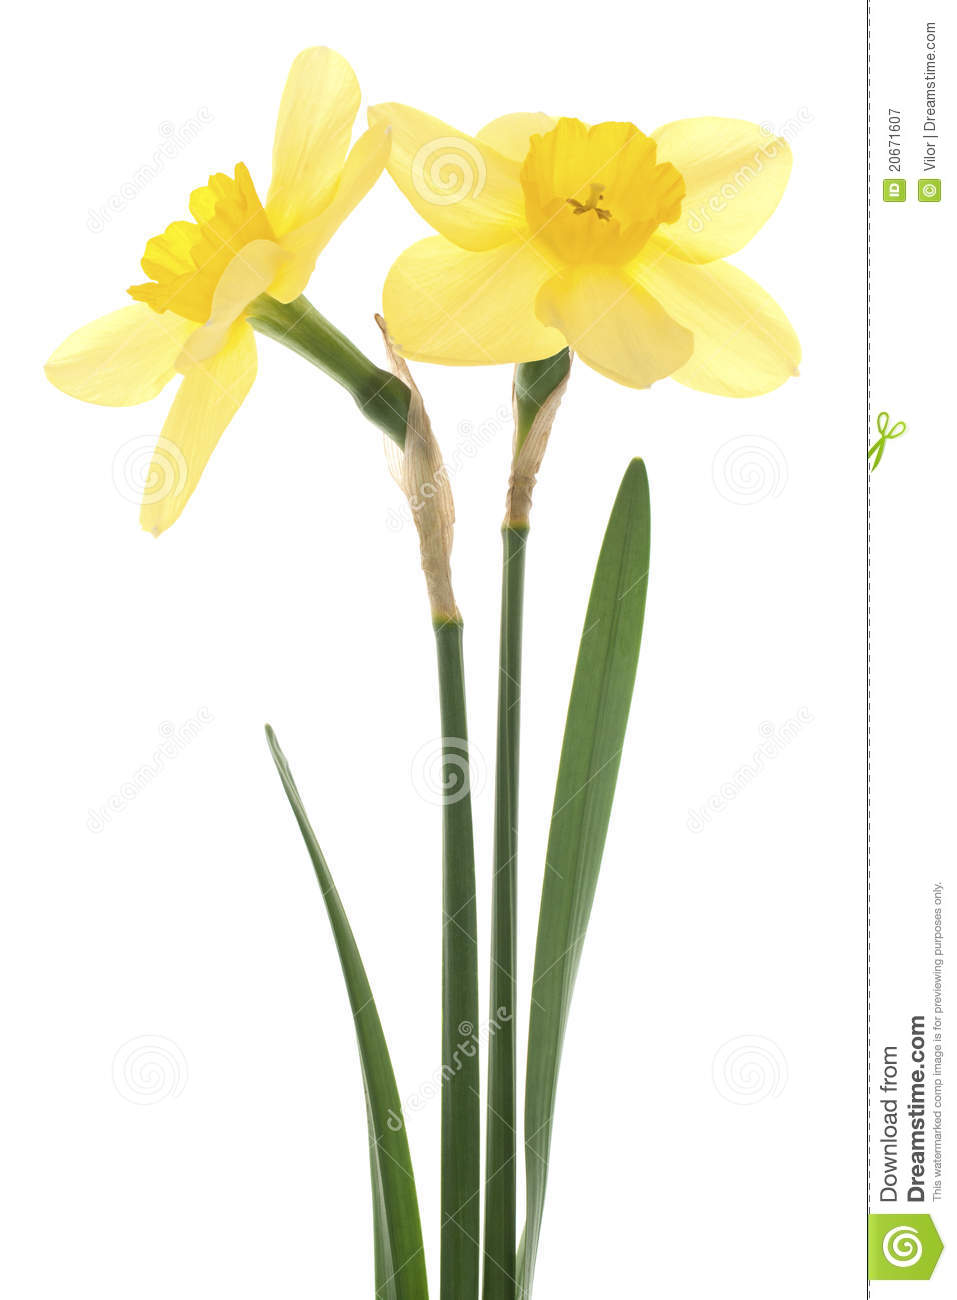 Studio Shot of Yellow Colored Daffodils Isolated on White Background ...